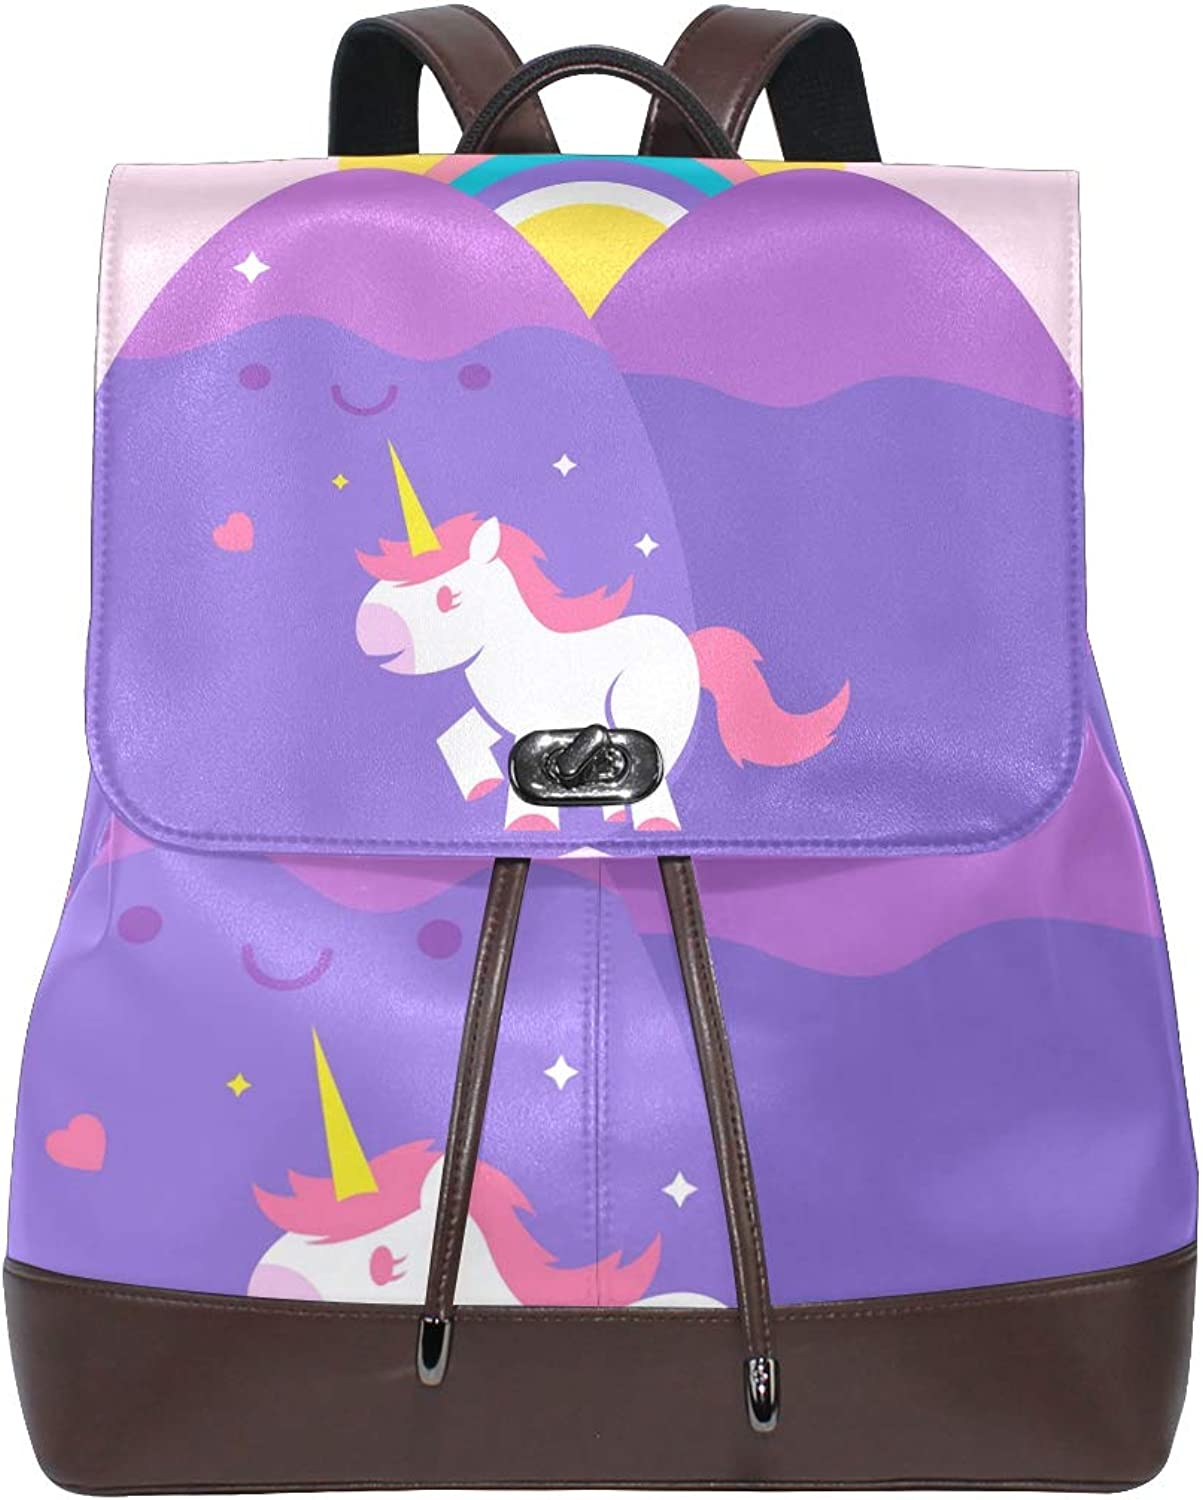 FAJRO purple Stone Egg Unicorn Travel Backpack Leather Handbag School Pack